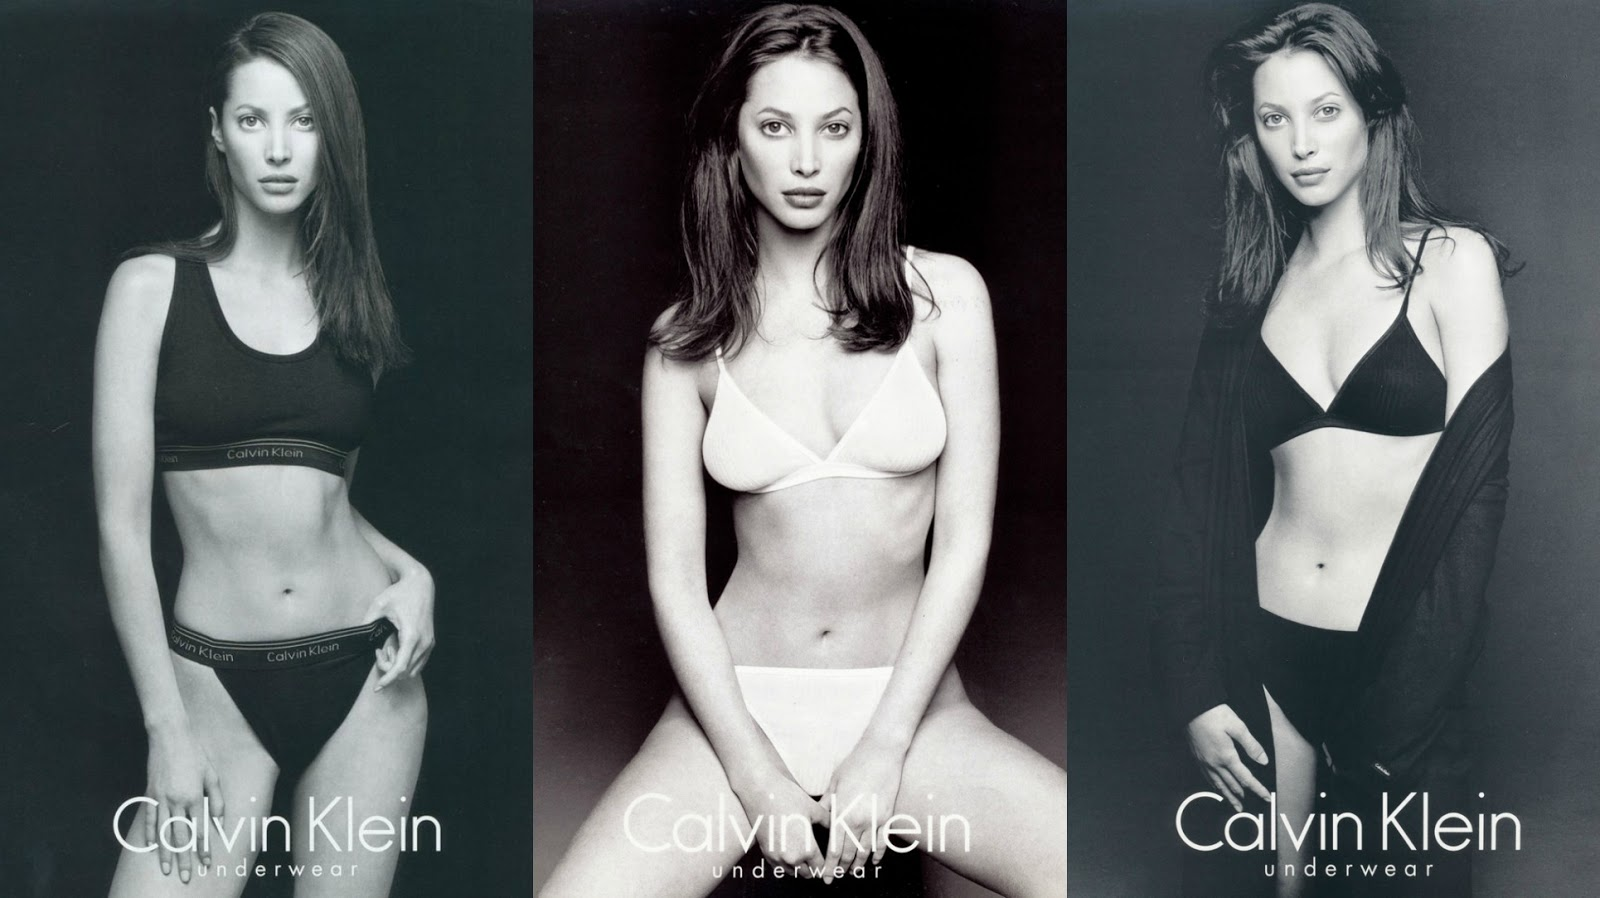 christy-turlington-calvin-klein-adv-campaign